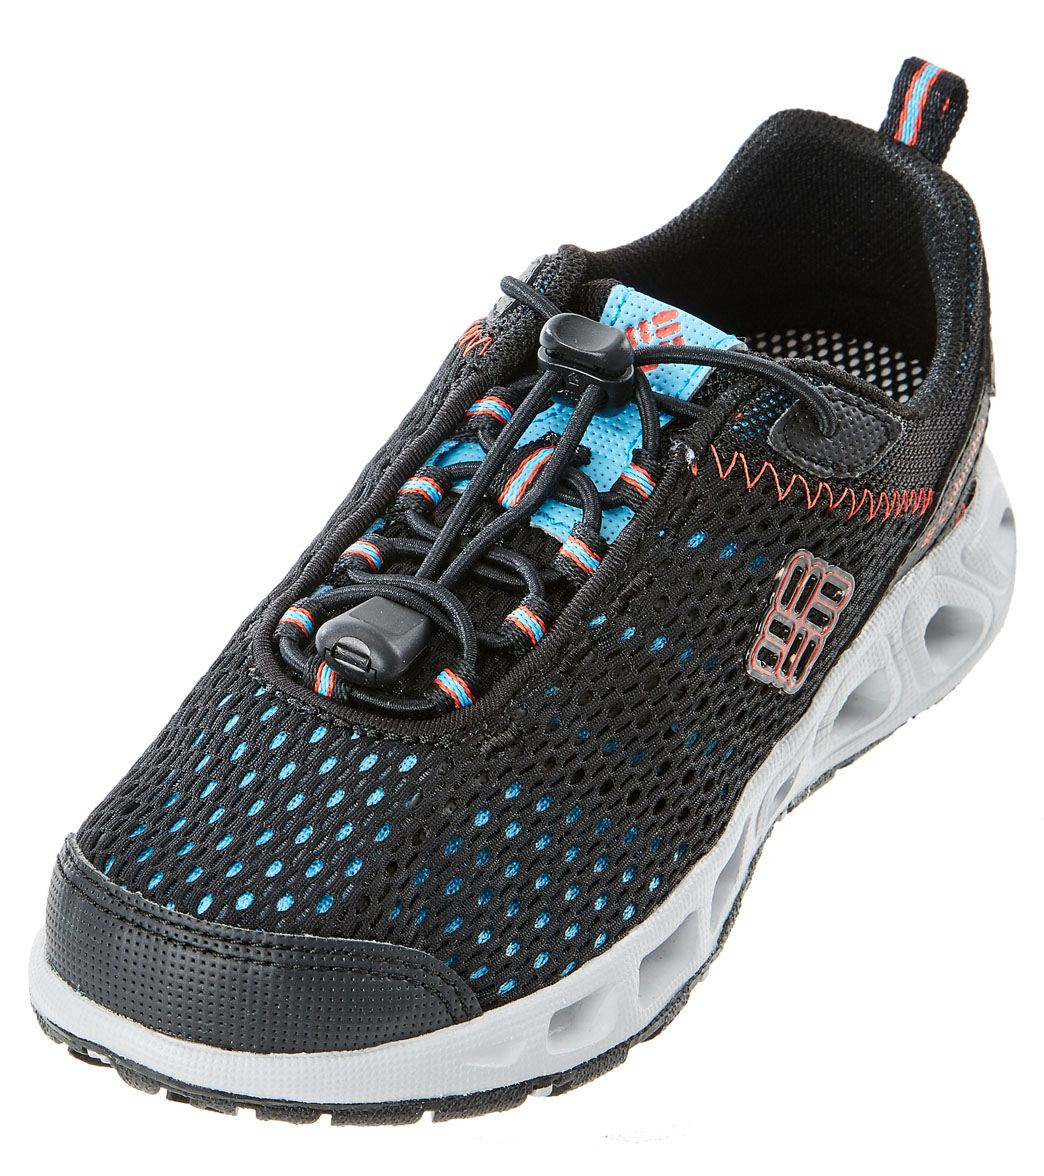 210c0af2038 Columbia Youth Drainmaker III Water Shoe at SwimOutlet.com - Free Shipping